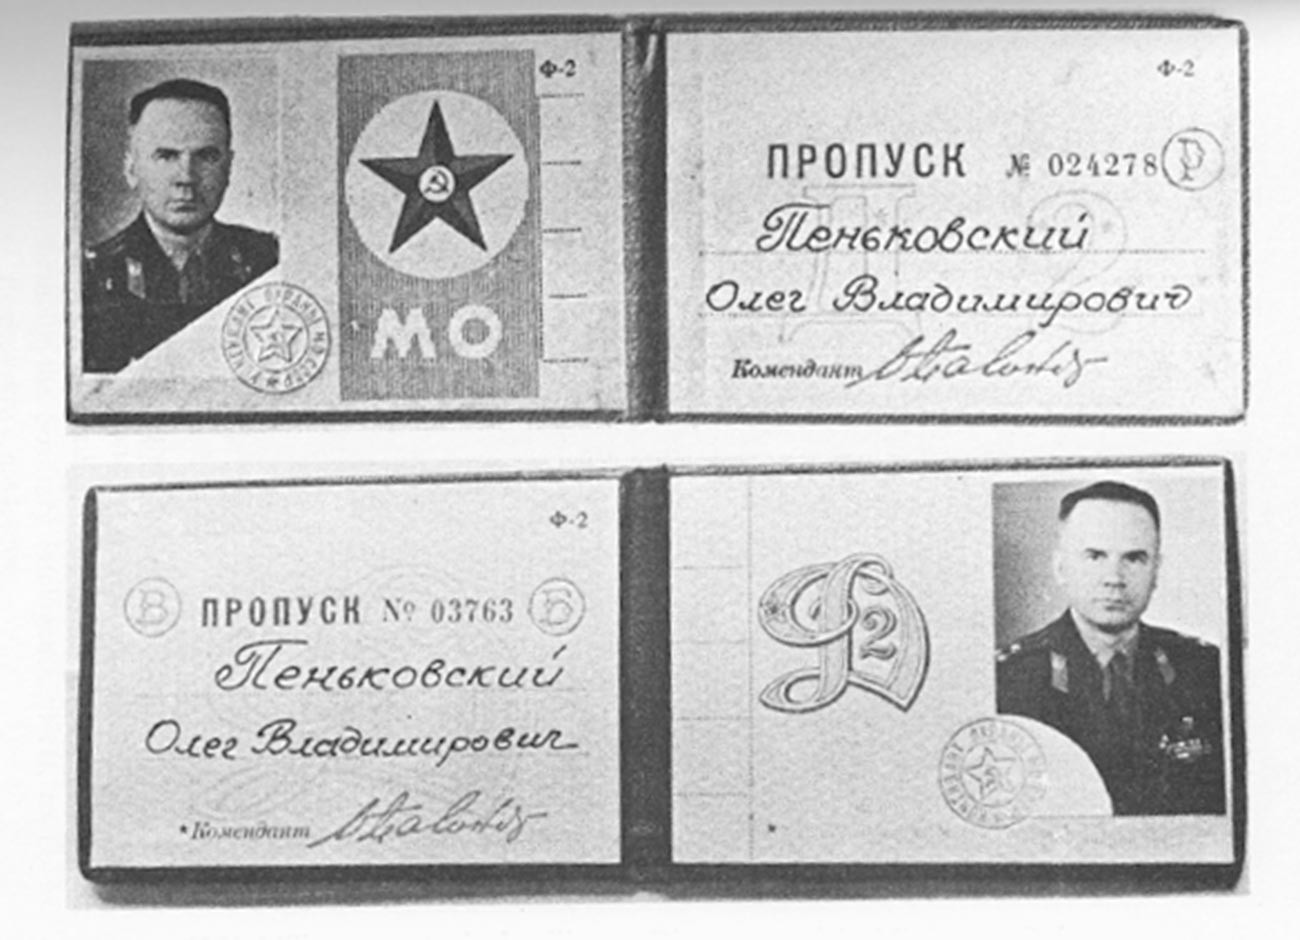 Colonel Oleg Penkovskiy's military pass to the buildings of the General Staff and Ministry of Defense in Moscow.